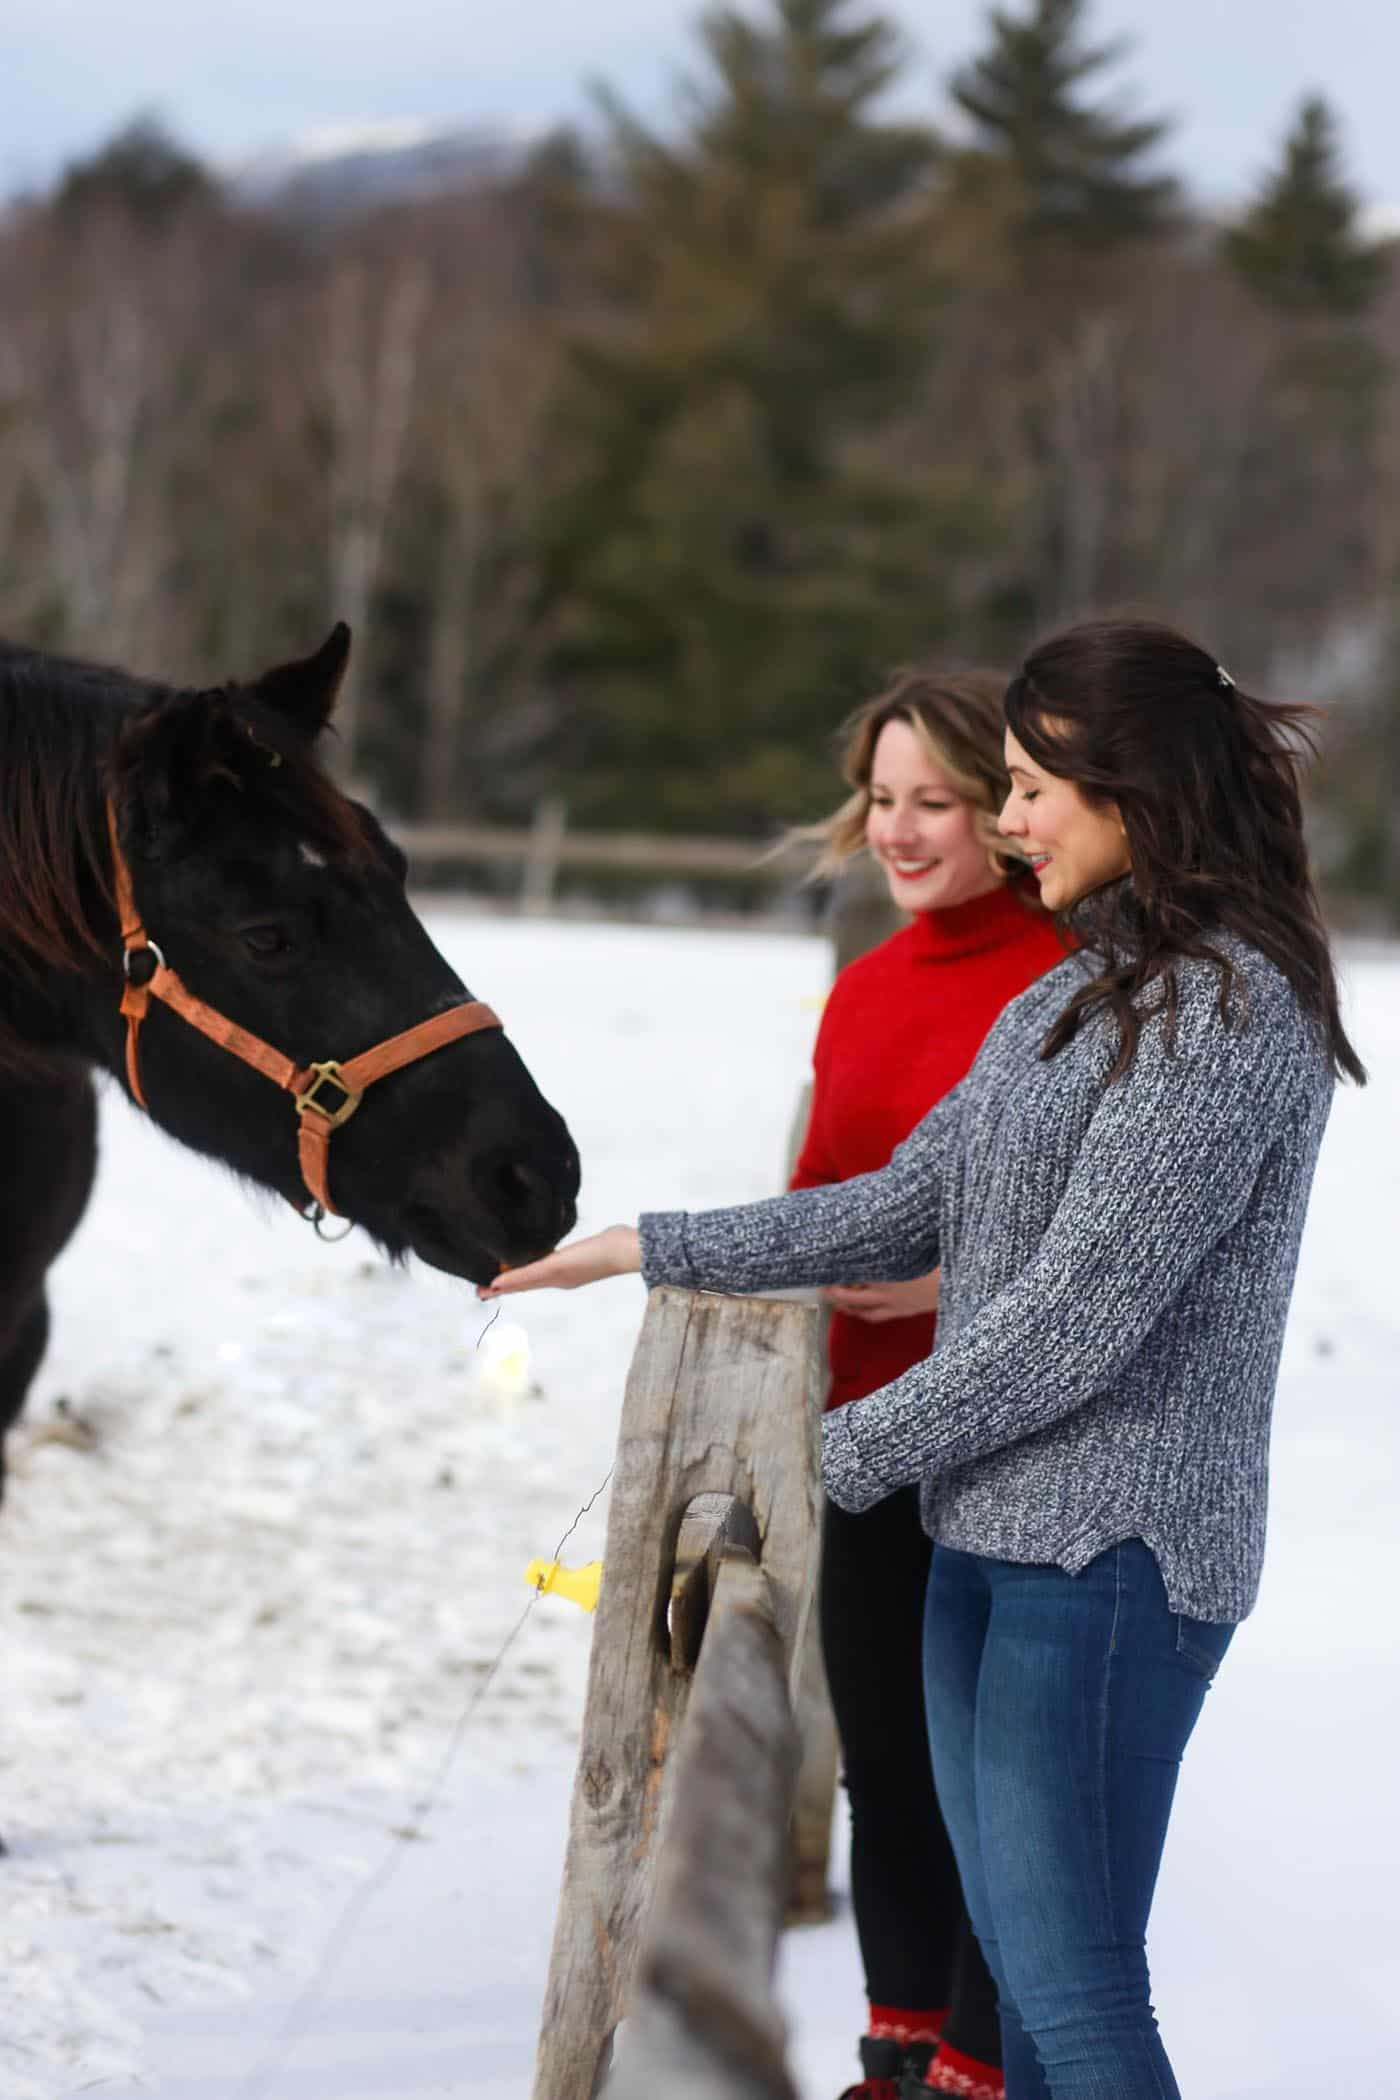 winter style, winter wonderland, things to do in Stowe Vermont - My Style Vita @mystylevita